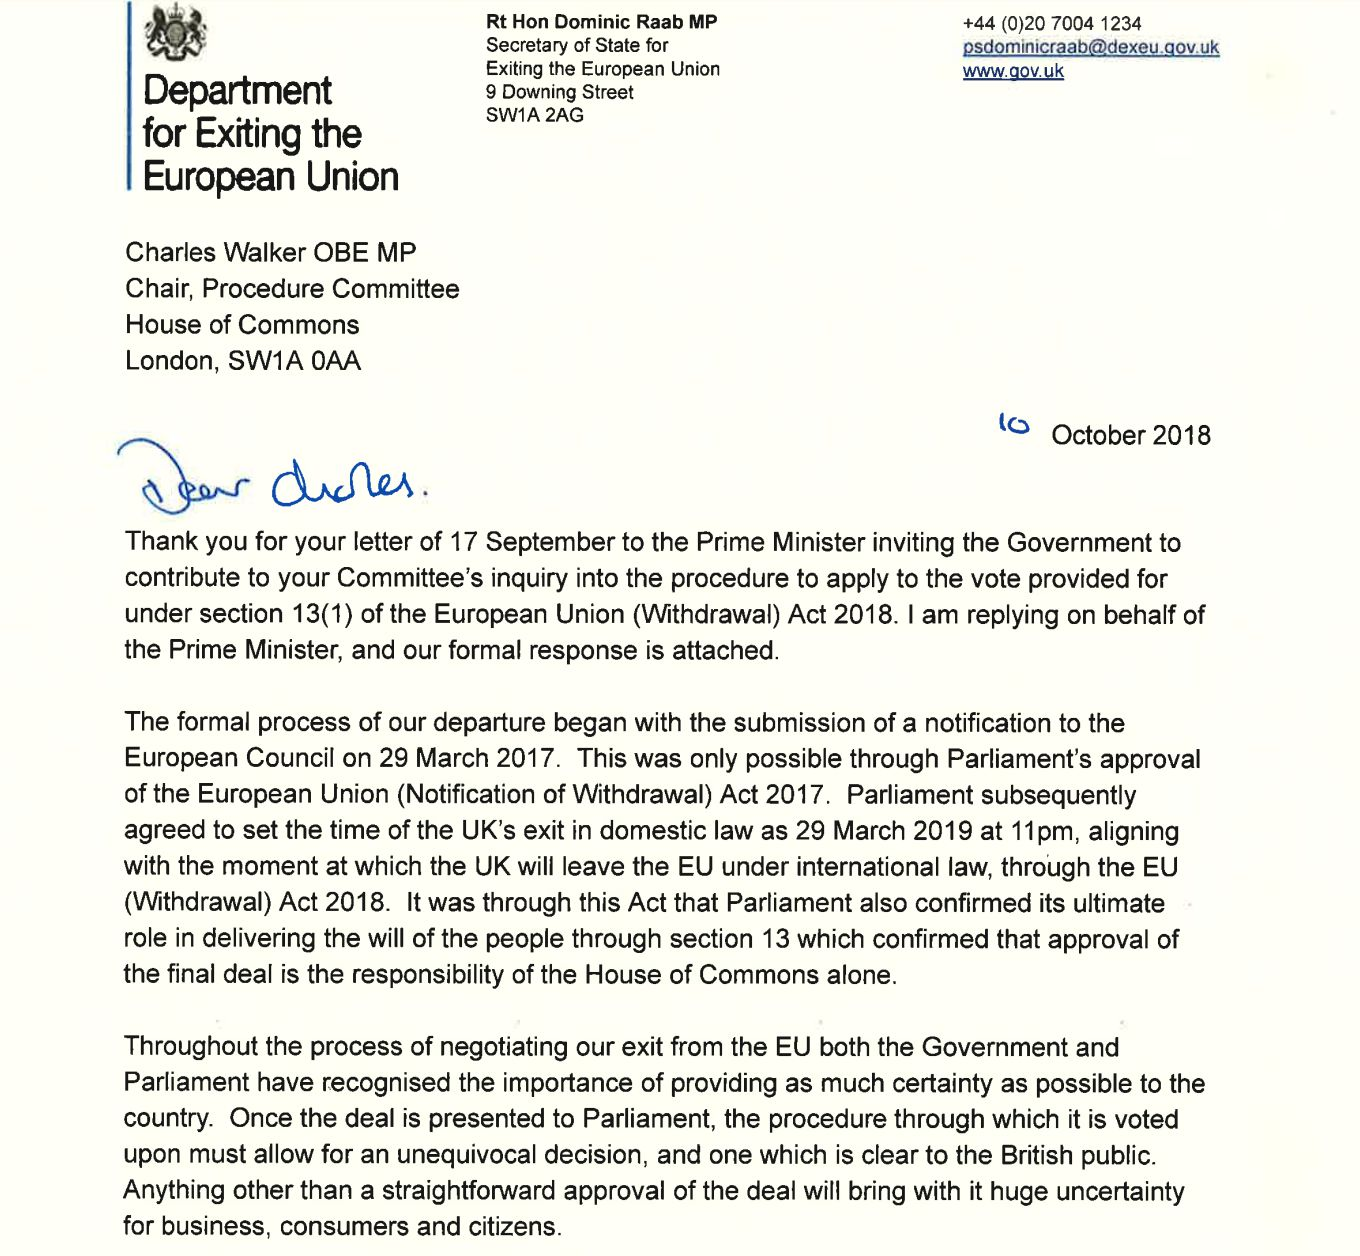 Dexeu               The letter from Dominic Raab